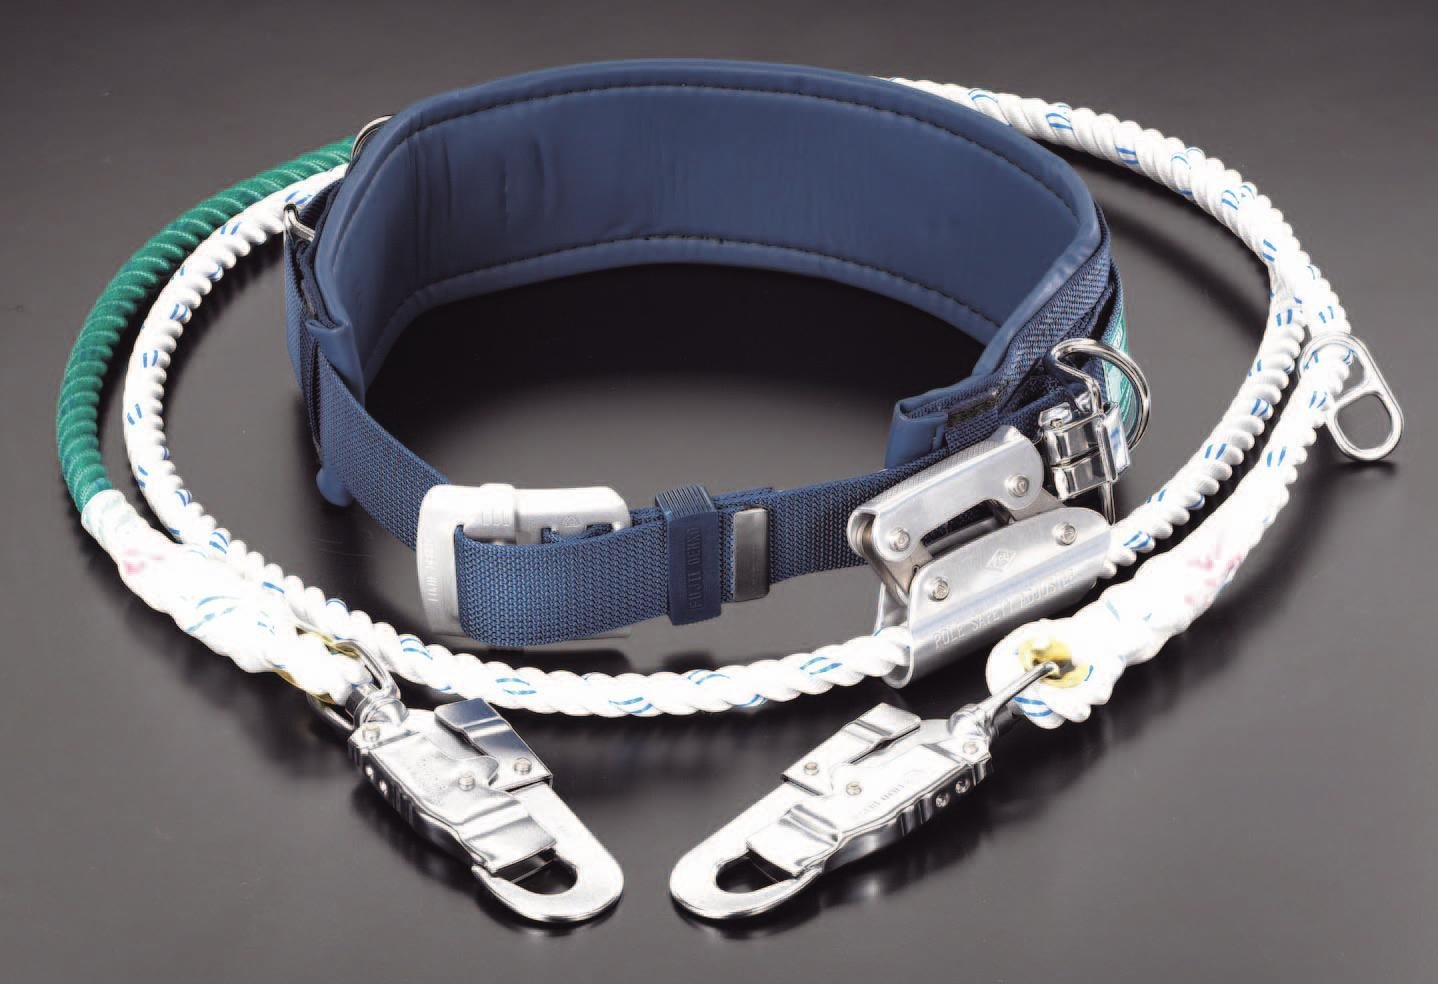 Full Body Harness, Universal, 400 lb, Green by Miller B007IA71VQ